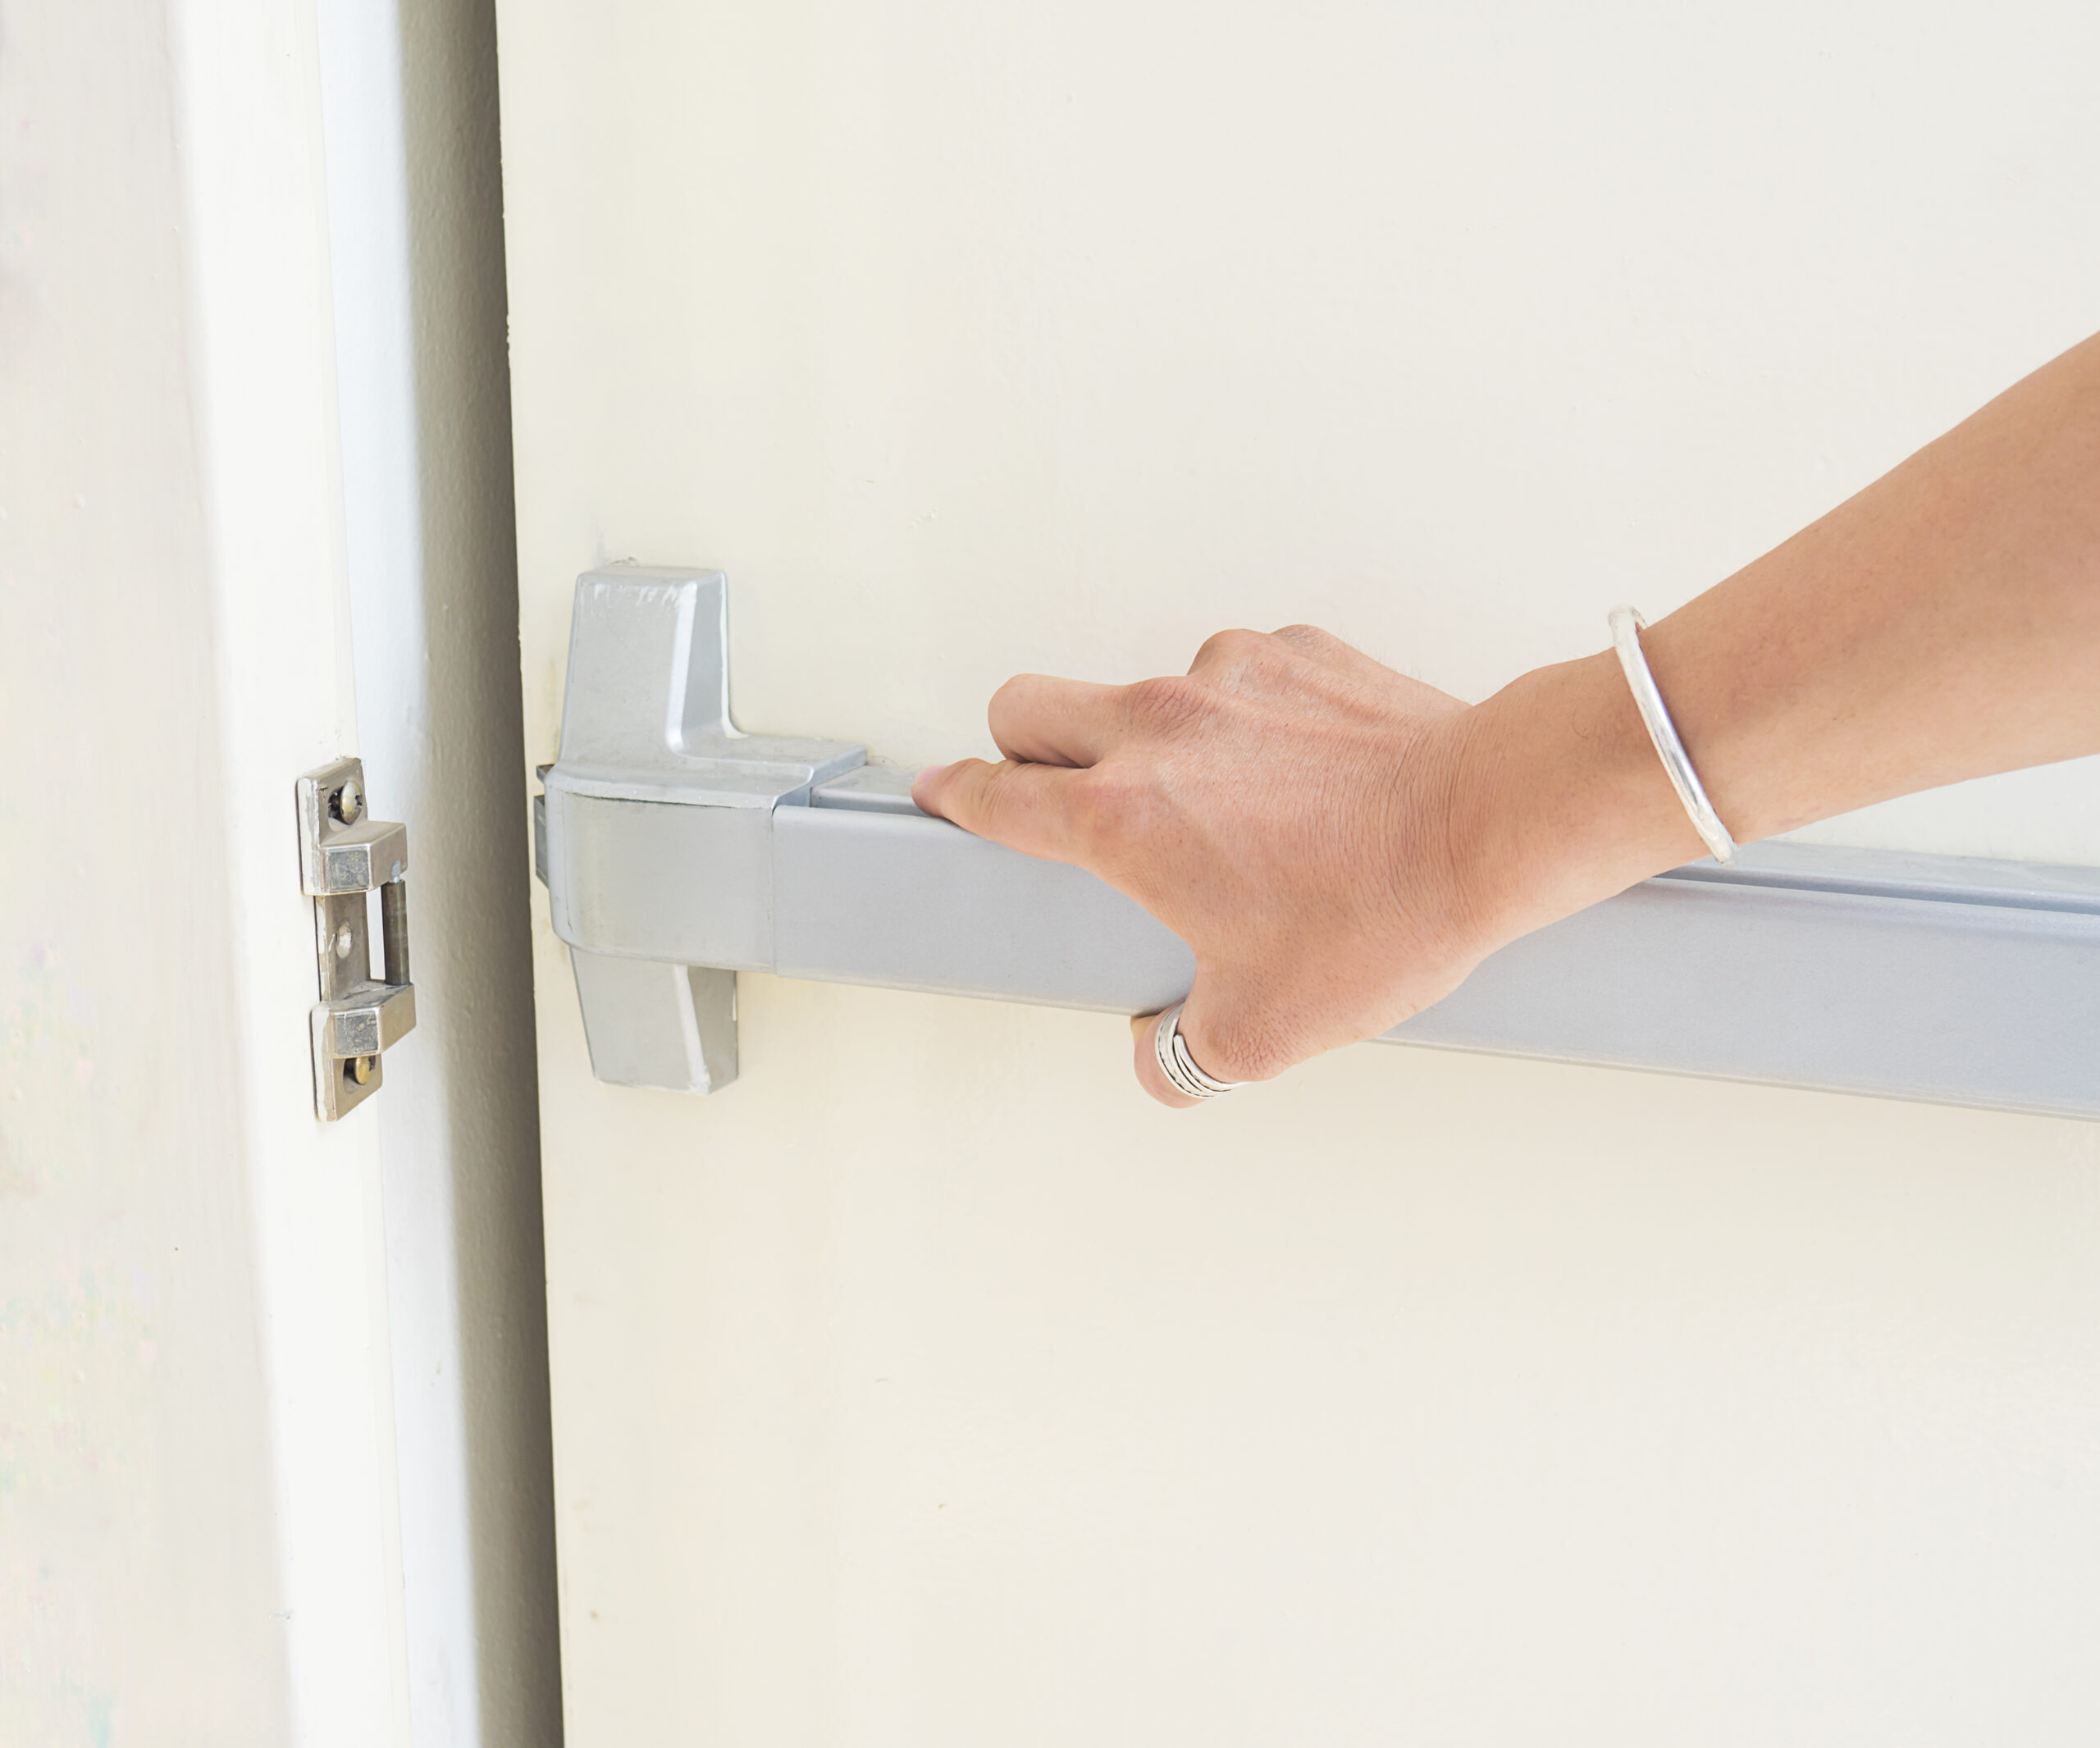 hand-is-pushing-opening-emergency-fire-exit-door-for-escape-plan